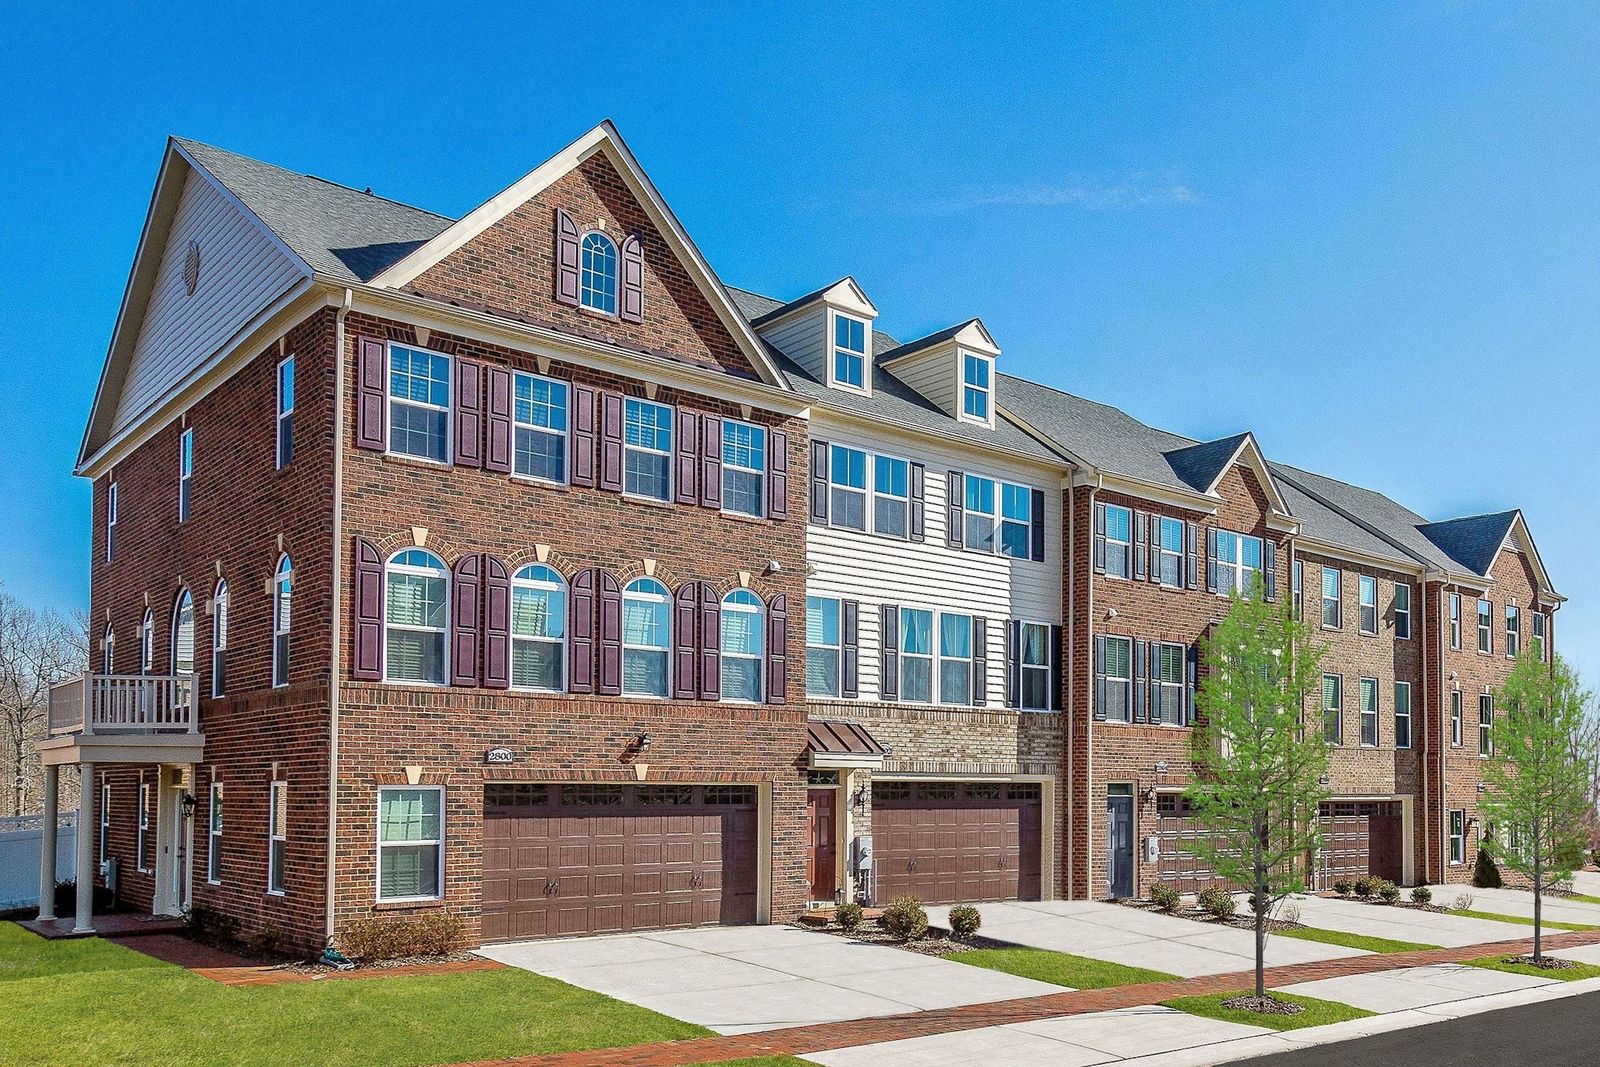 Luxury Townhomes With A 2 Car Garage, Fenced In Backyard And Deck Included.